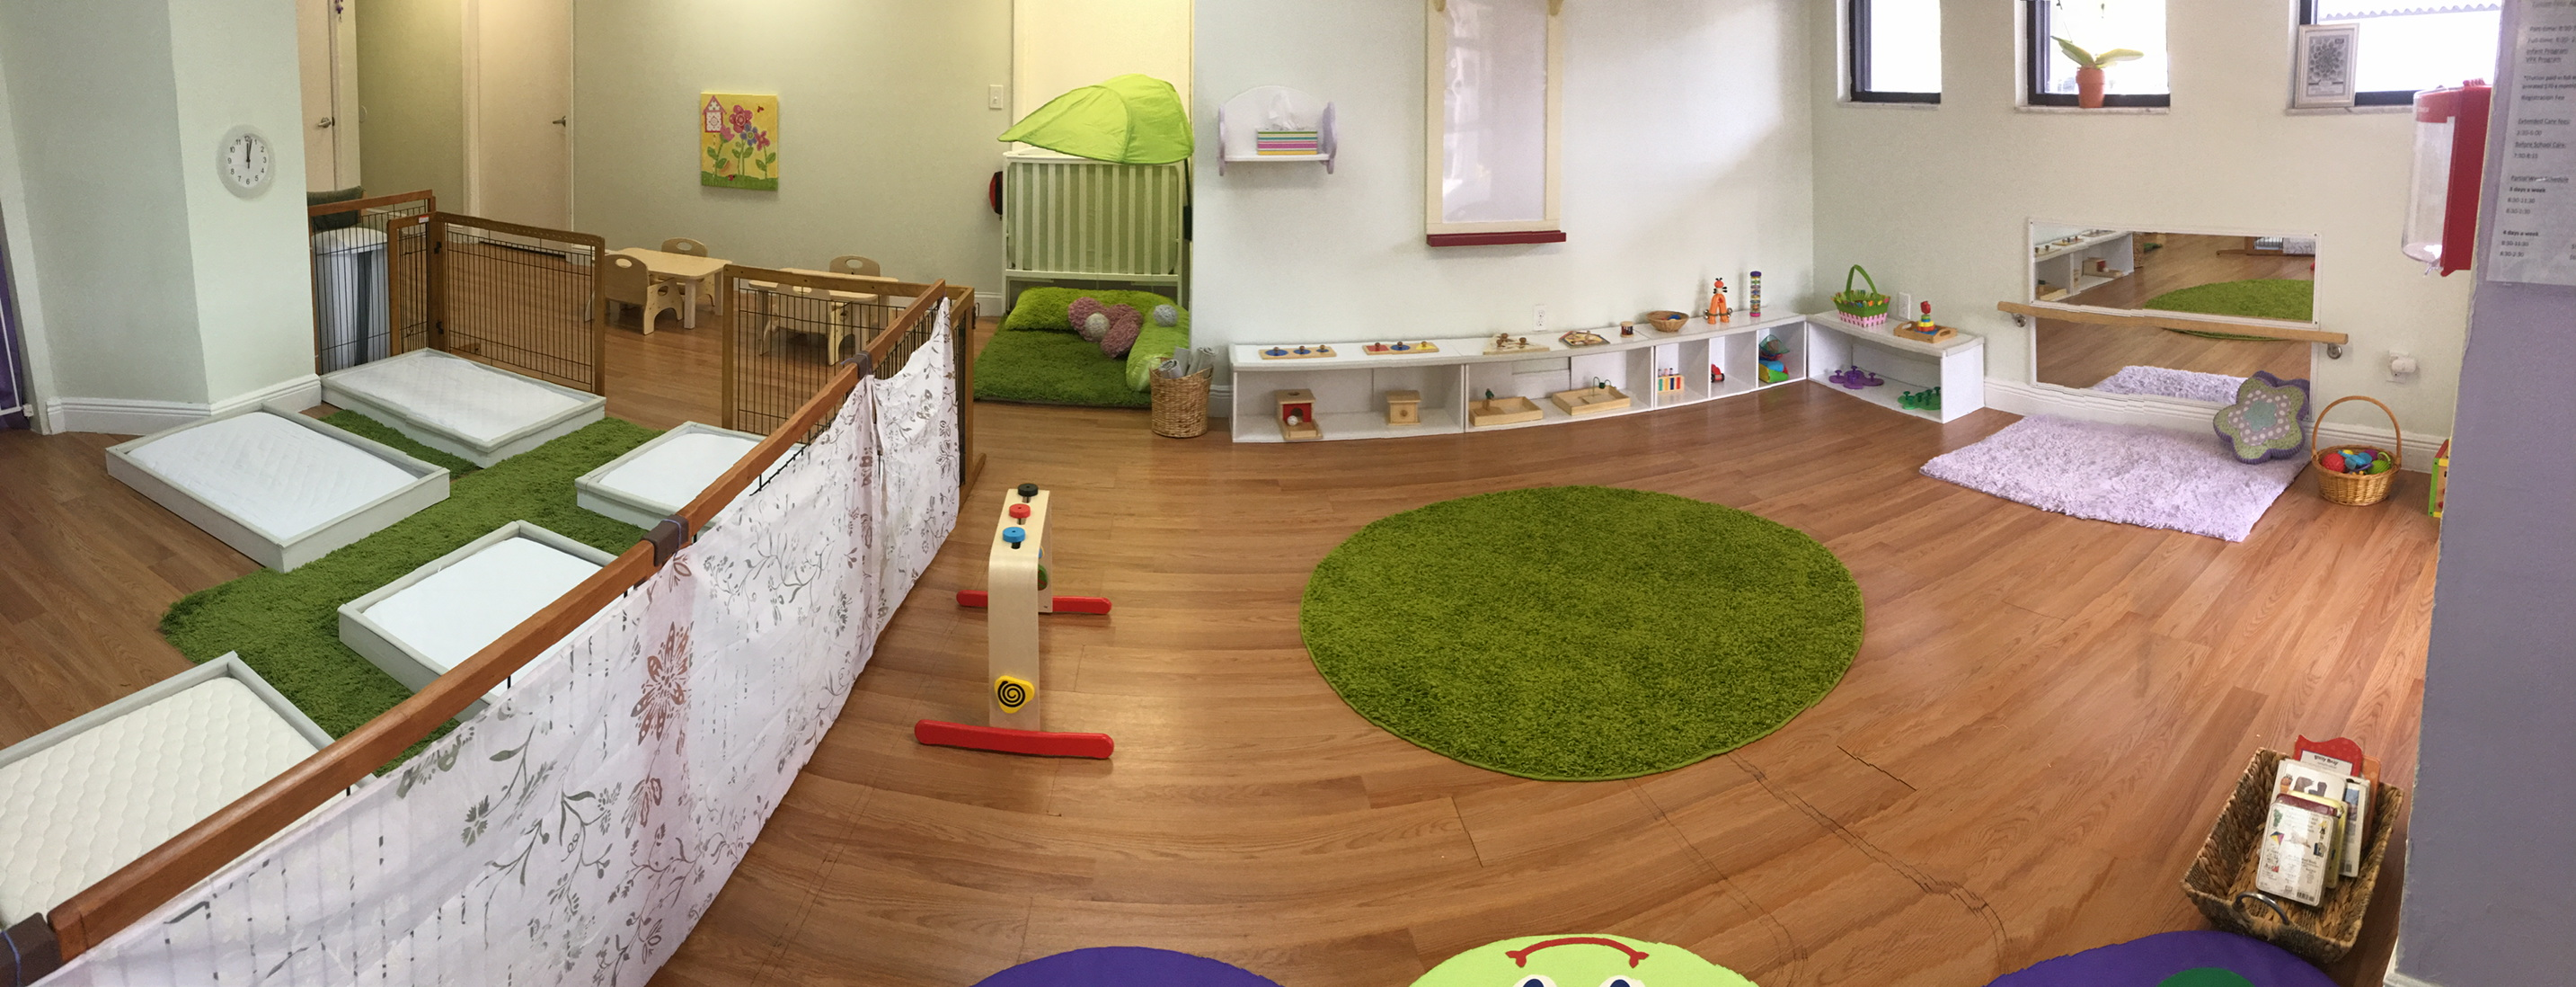 Montessori Infant Room The Montessori Garden